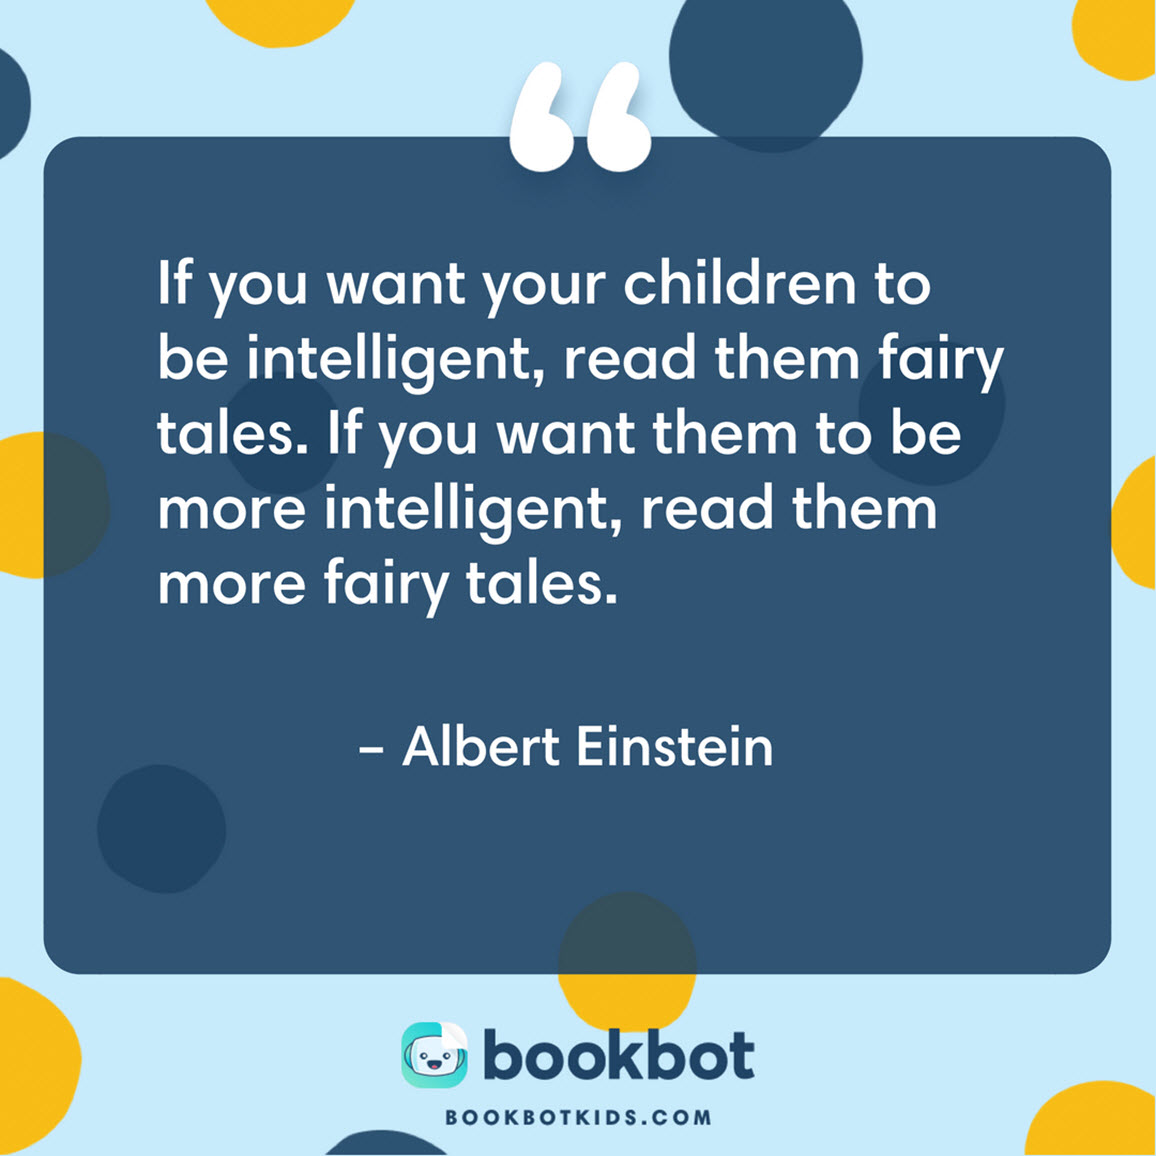 If you want your children to be intelligent, read them fairy tales. If you want them to be more intelligent, read them more fairy tales. – Albert Einstein